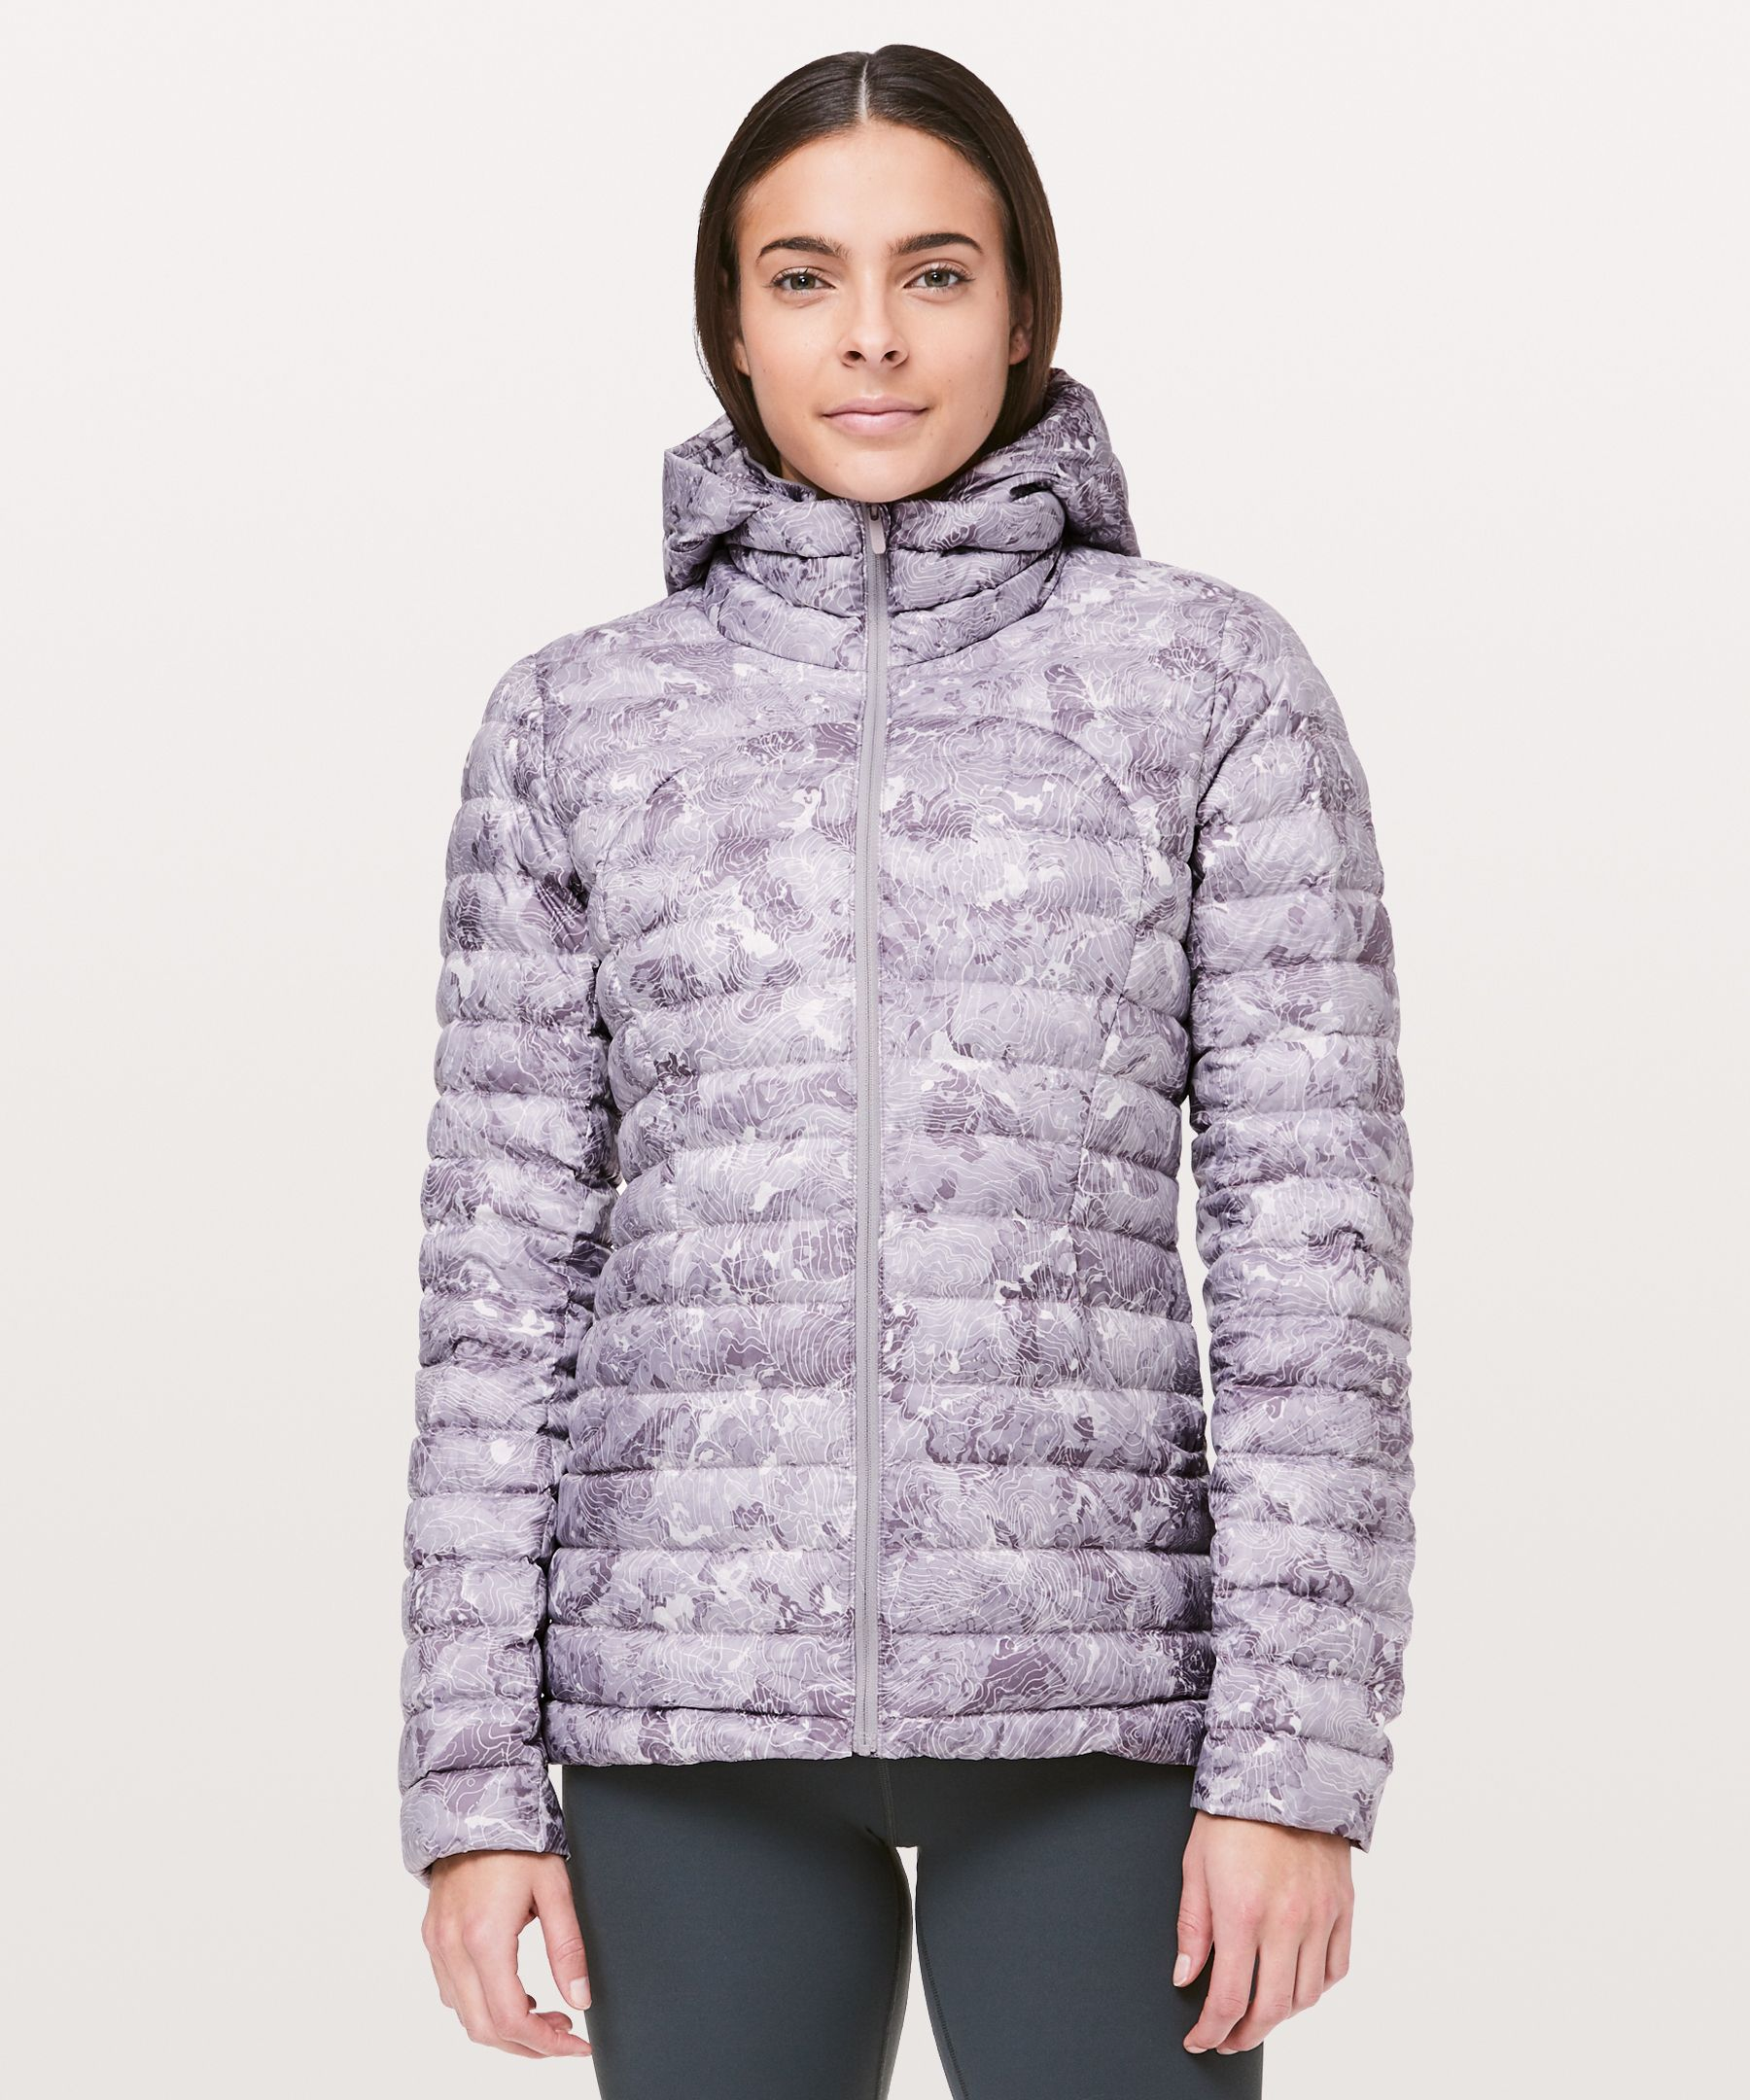 Lululemon Pack It Down Again Jacket In Elevation Pink Multi